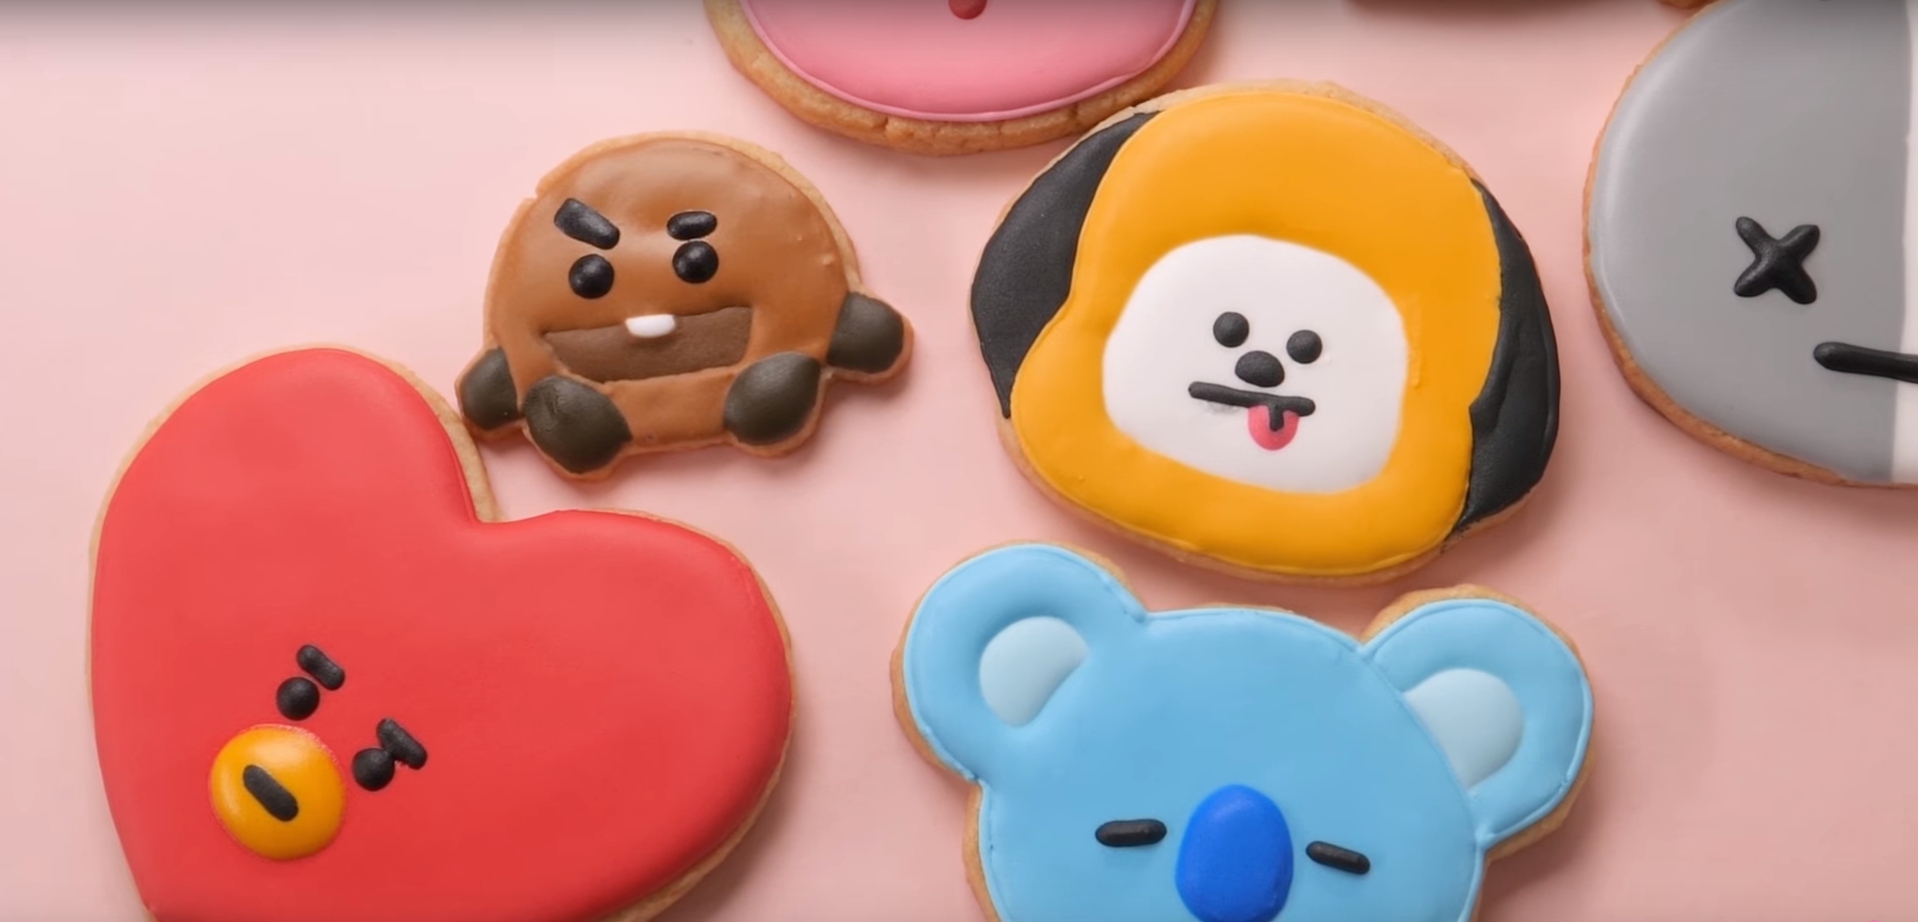 Bake Bts Cookies And Ice Exo Cakes With These Recipes Sbs Popasia